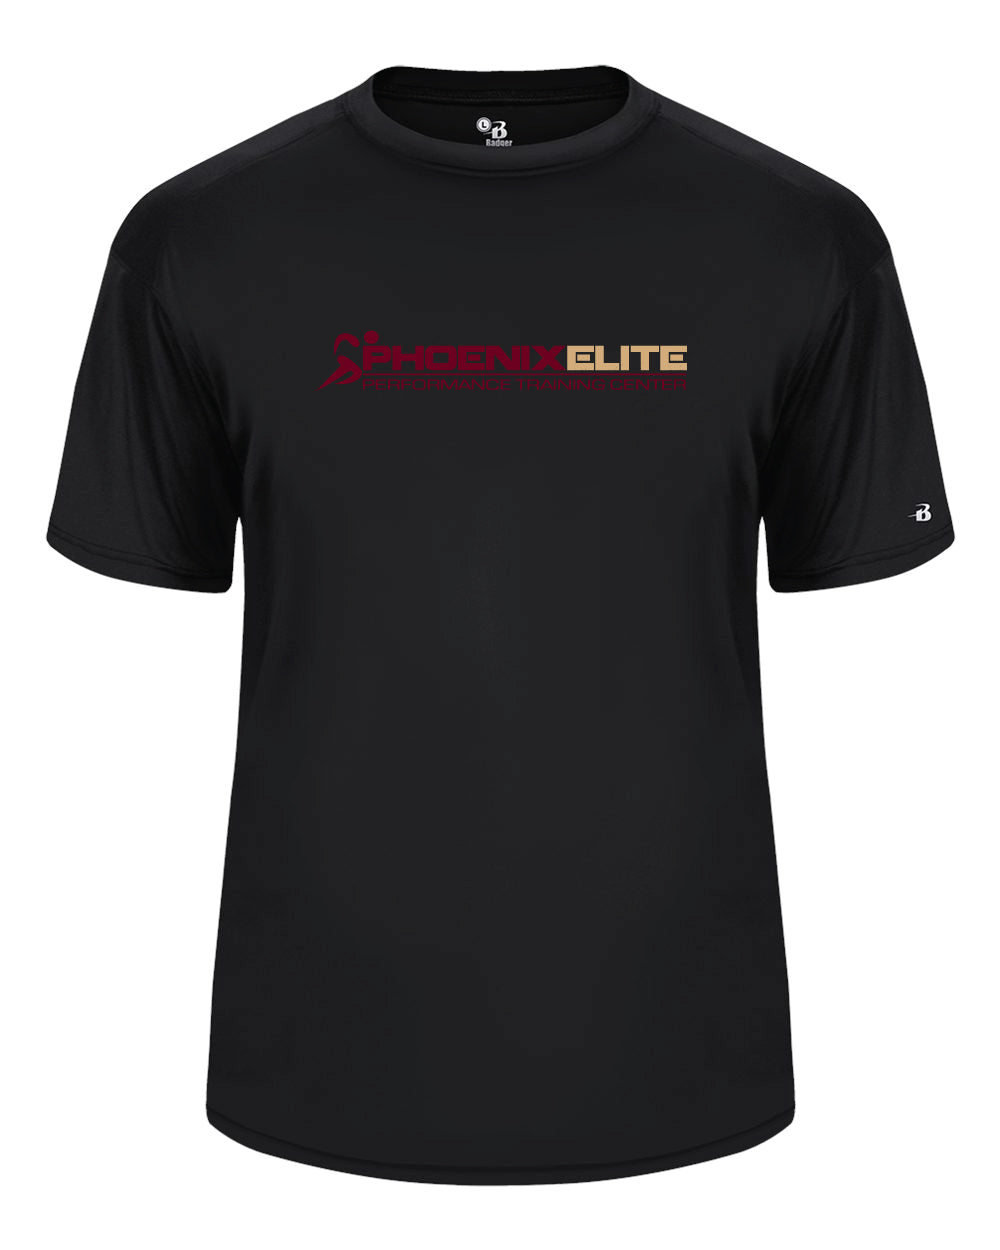 Phoenix Elite Performance Short Sleeve Shirt - Black